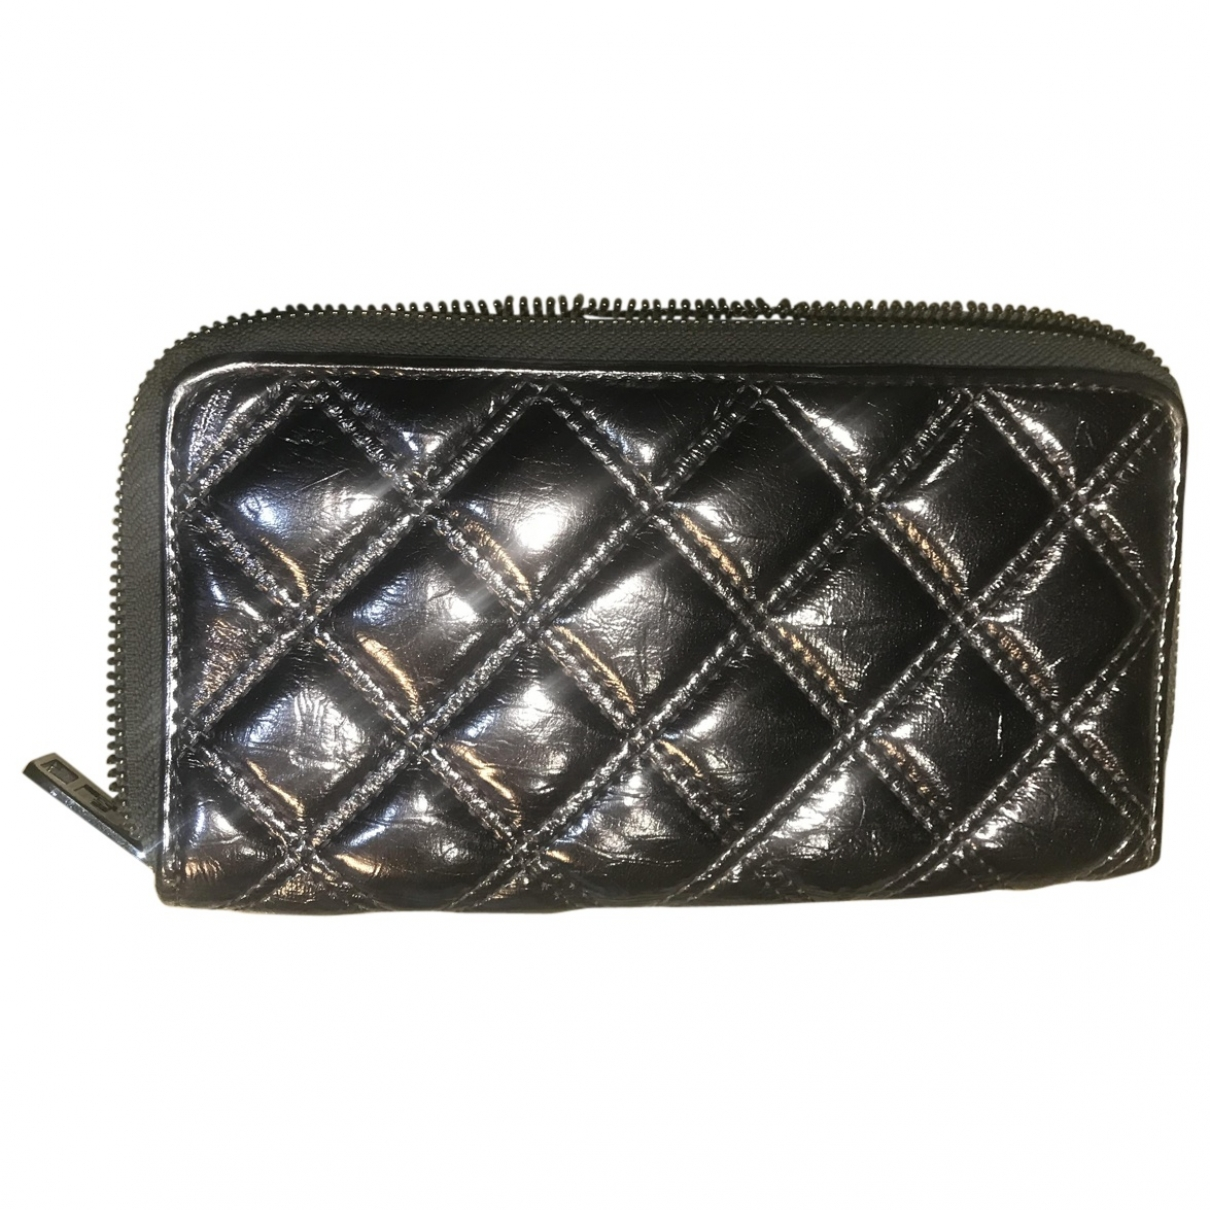 Marc Jacobs \N Silver Leather wallet for Women \N